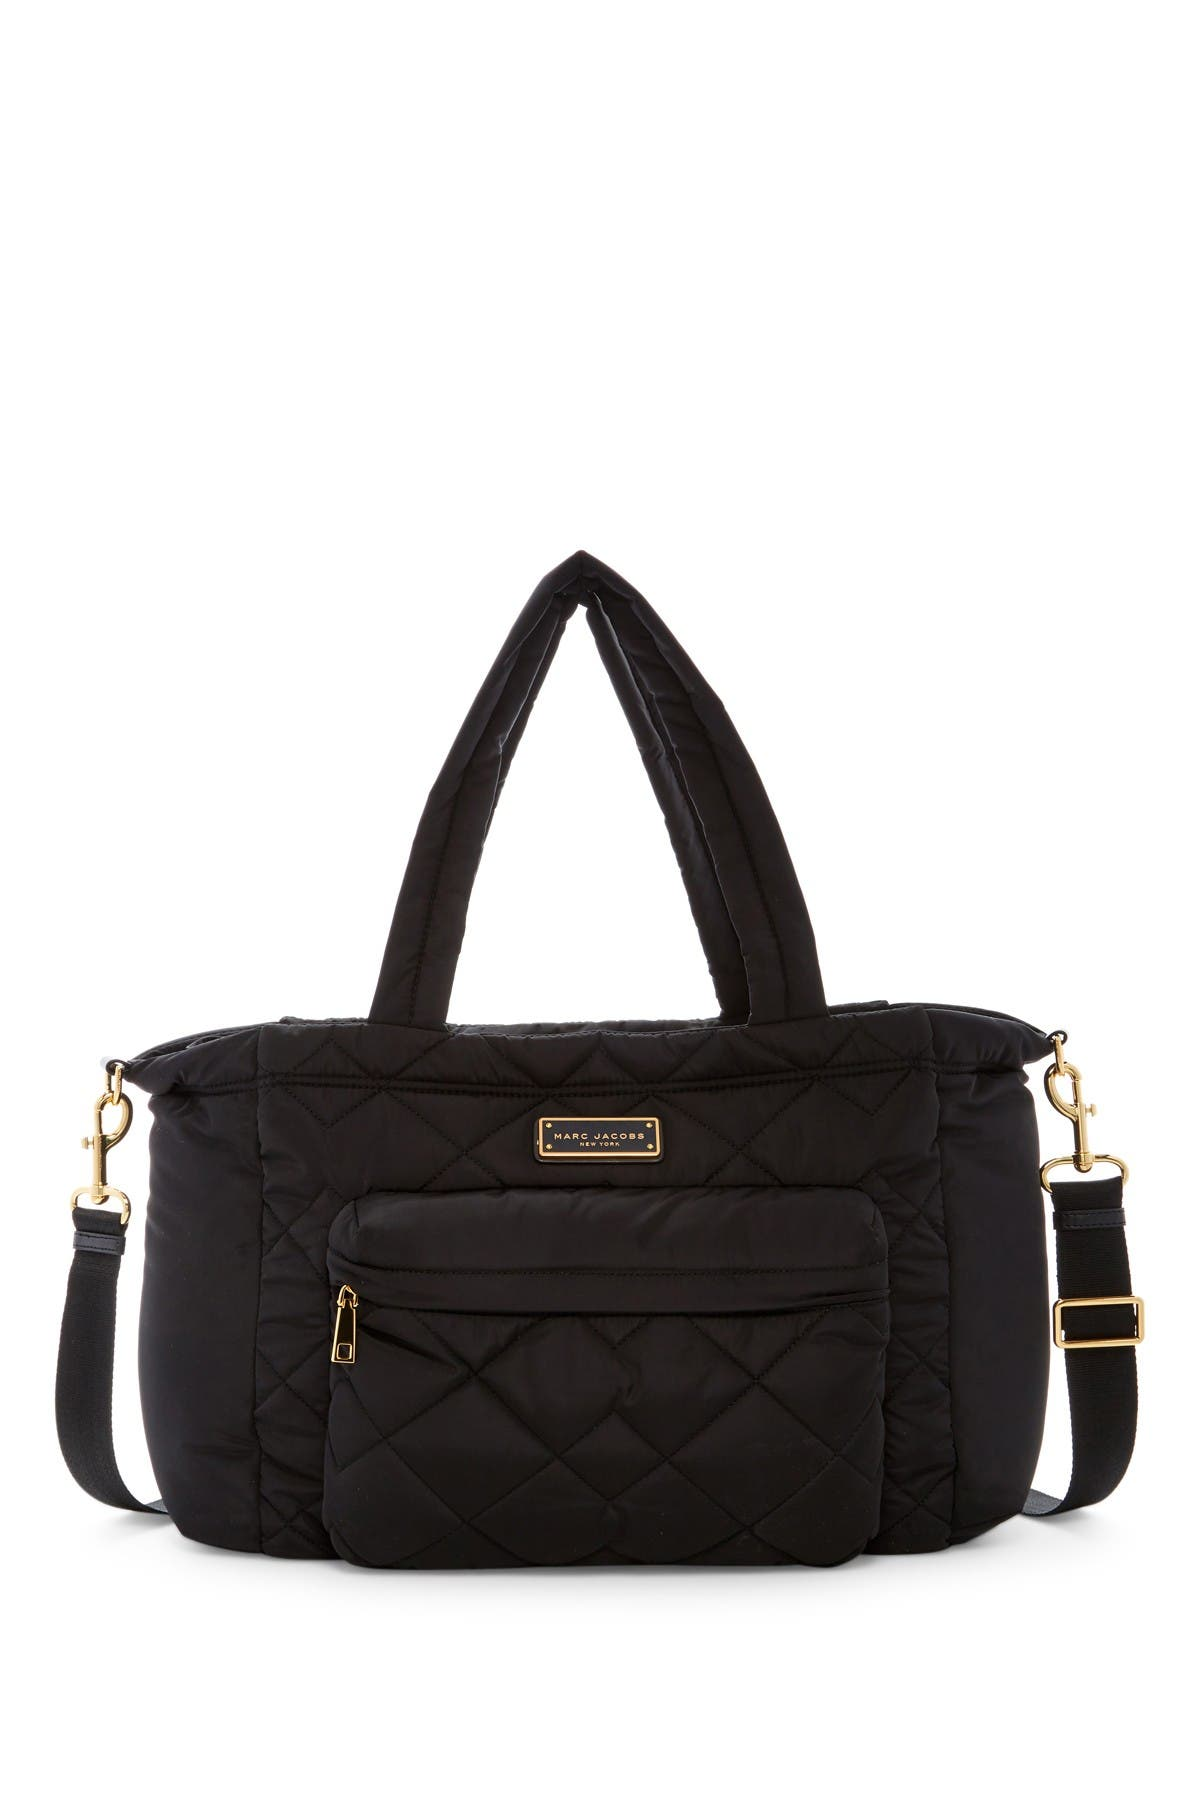 Image of Marc Jacobs Quilted Nylon Baby Bag & Changing Pad